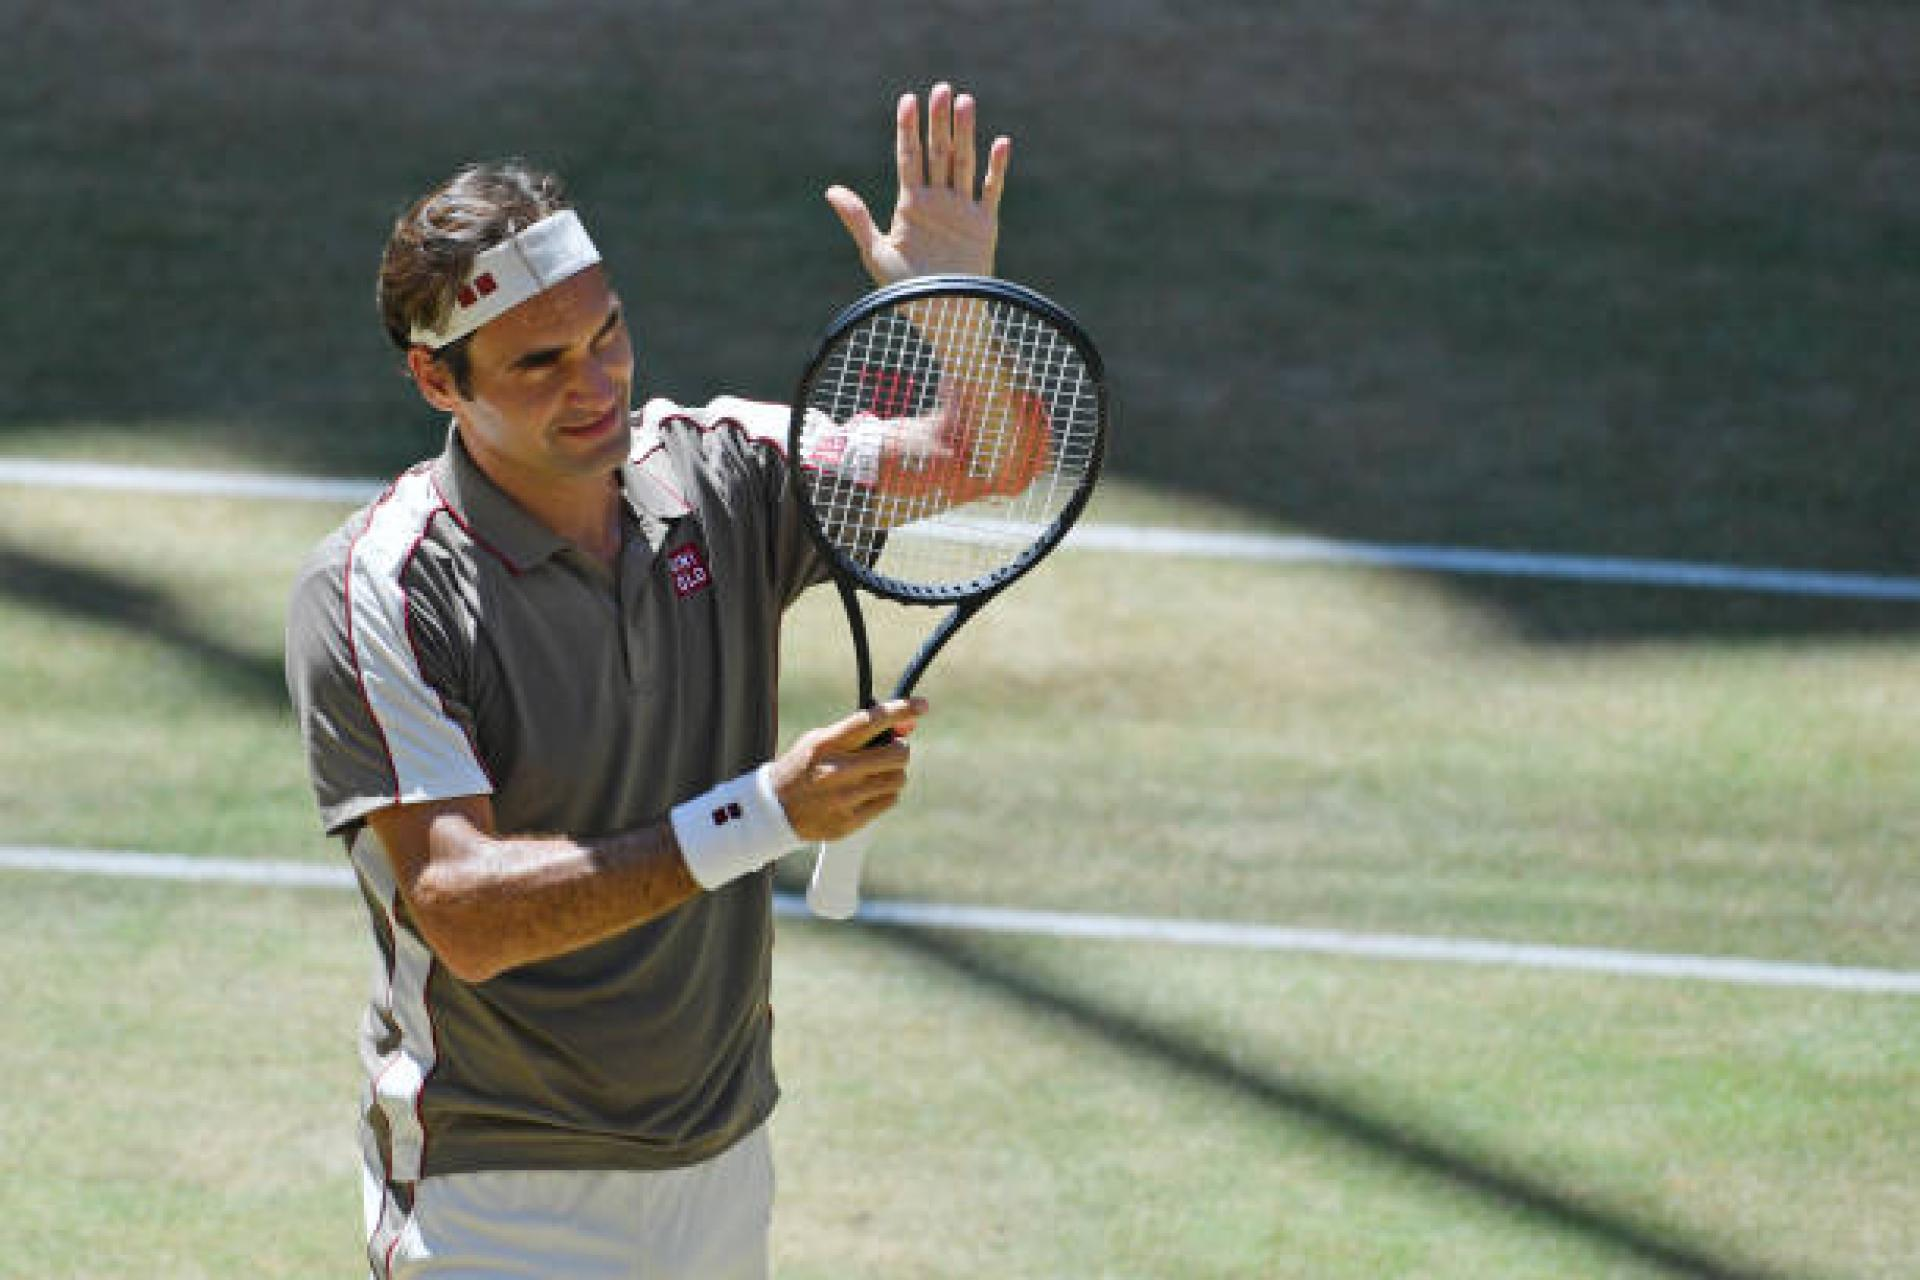 Roger Federer: I didn't think I was gonna win the Halle title